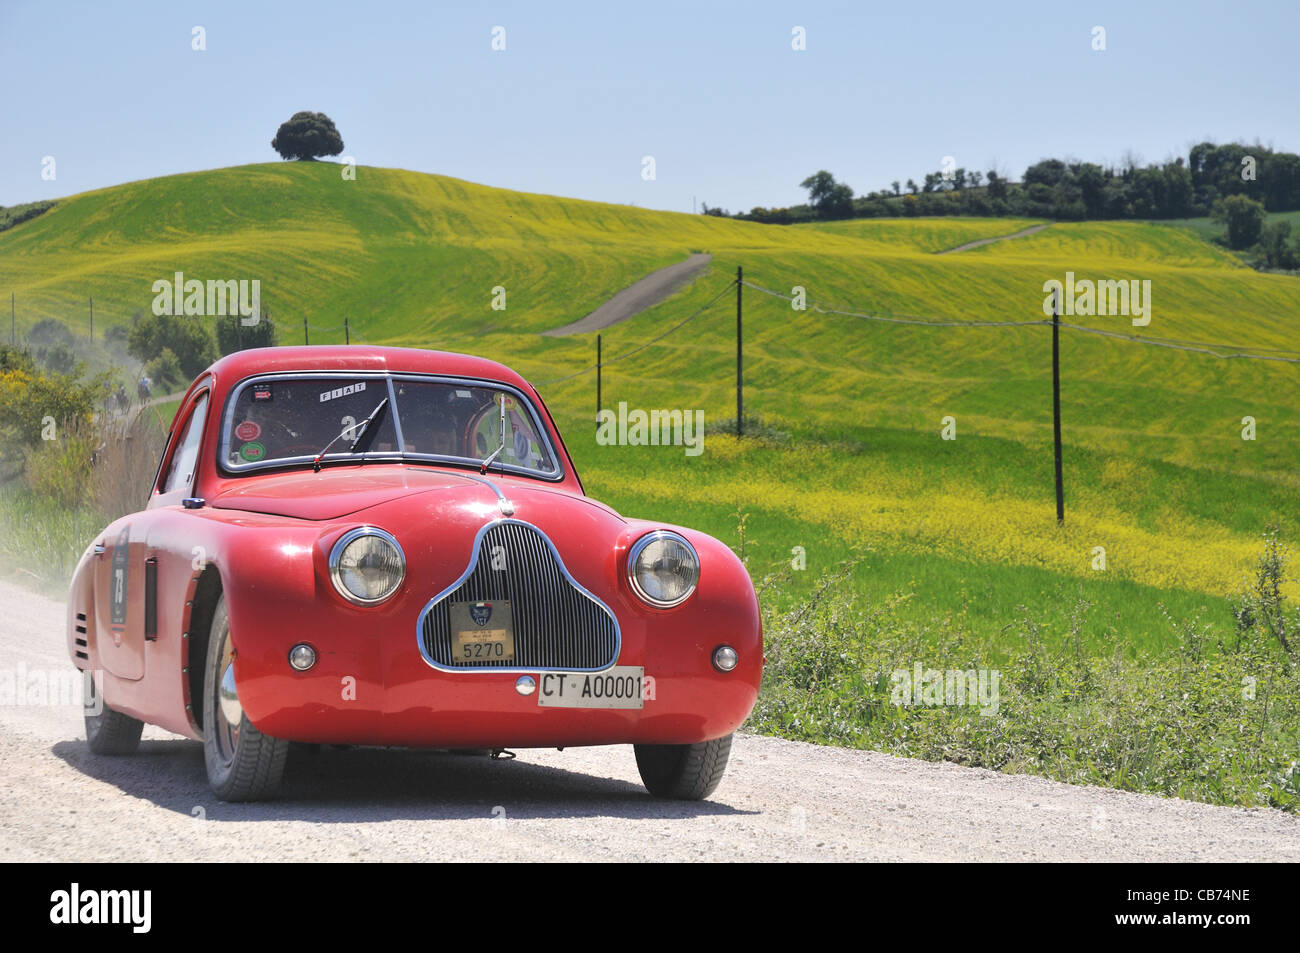 A 1938 red Fiat 508 CS MM at 1000 Miglia vintage car race - Stock Image